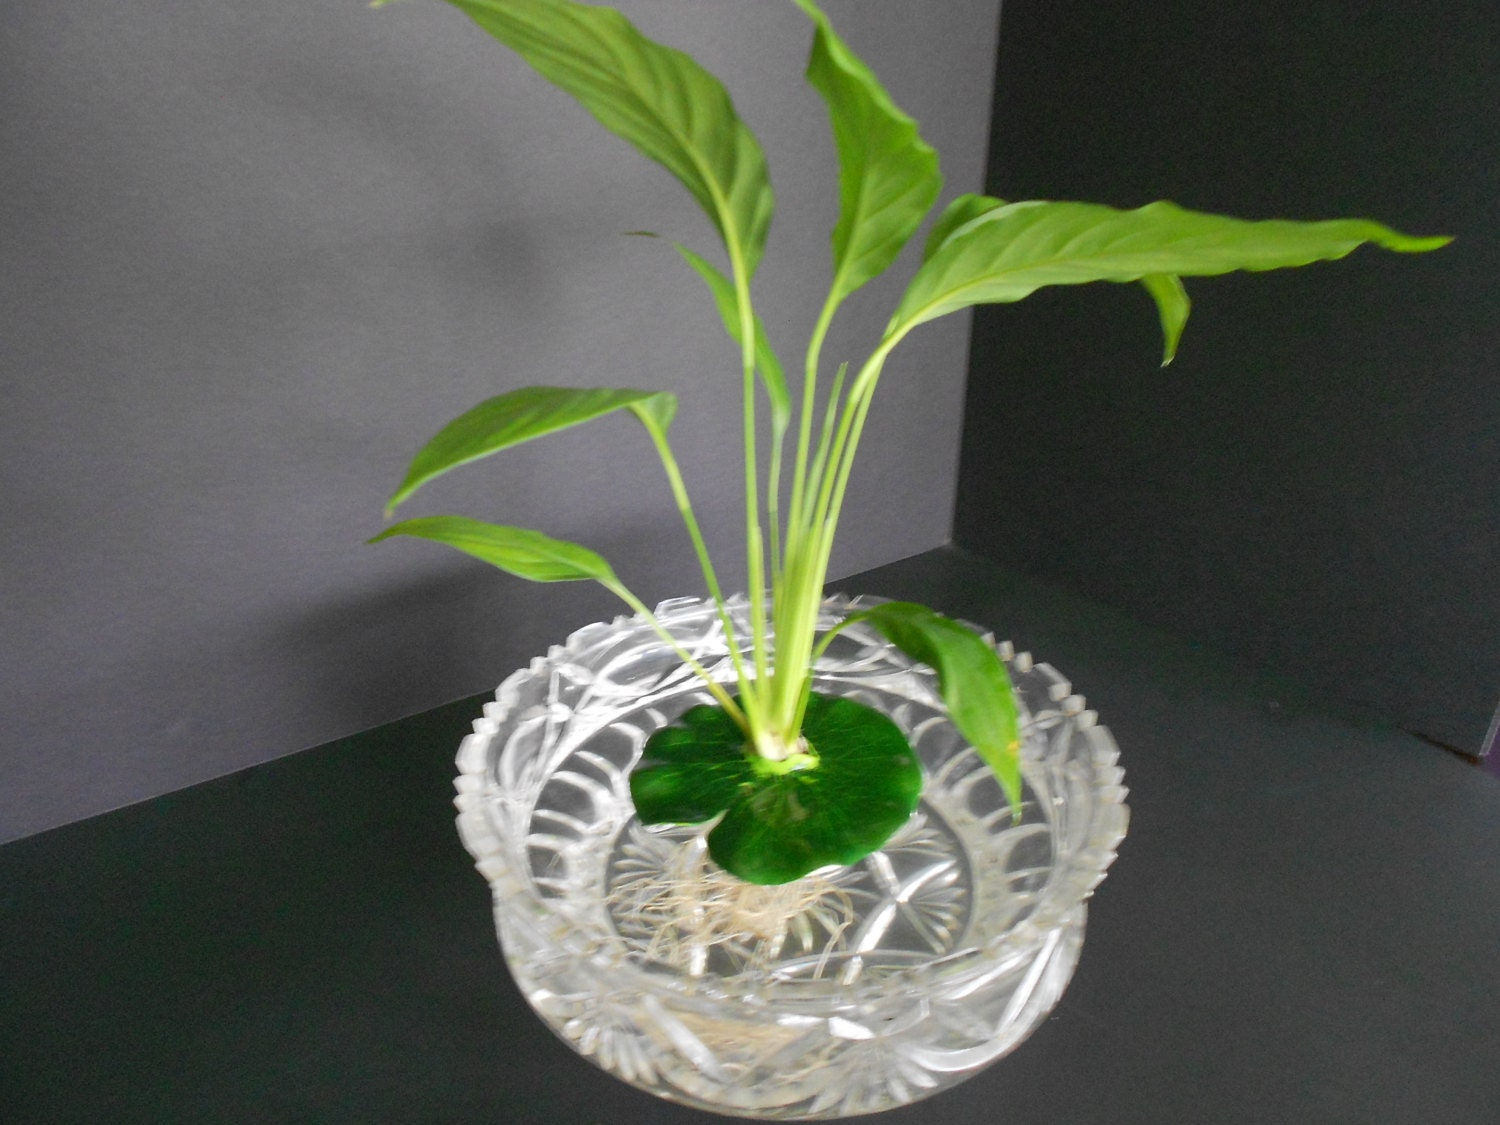 Flower vase with fish - Floating Peace Lily Perfect For Fish Bowls And Aquariums